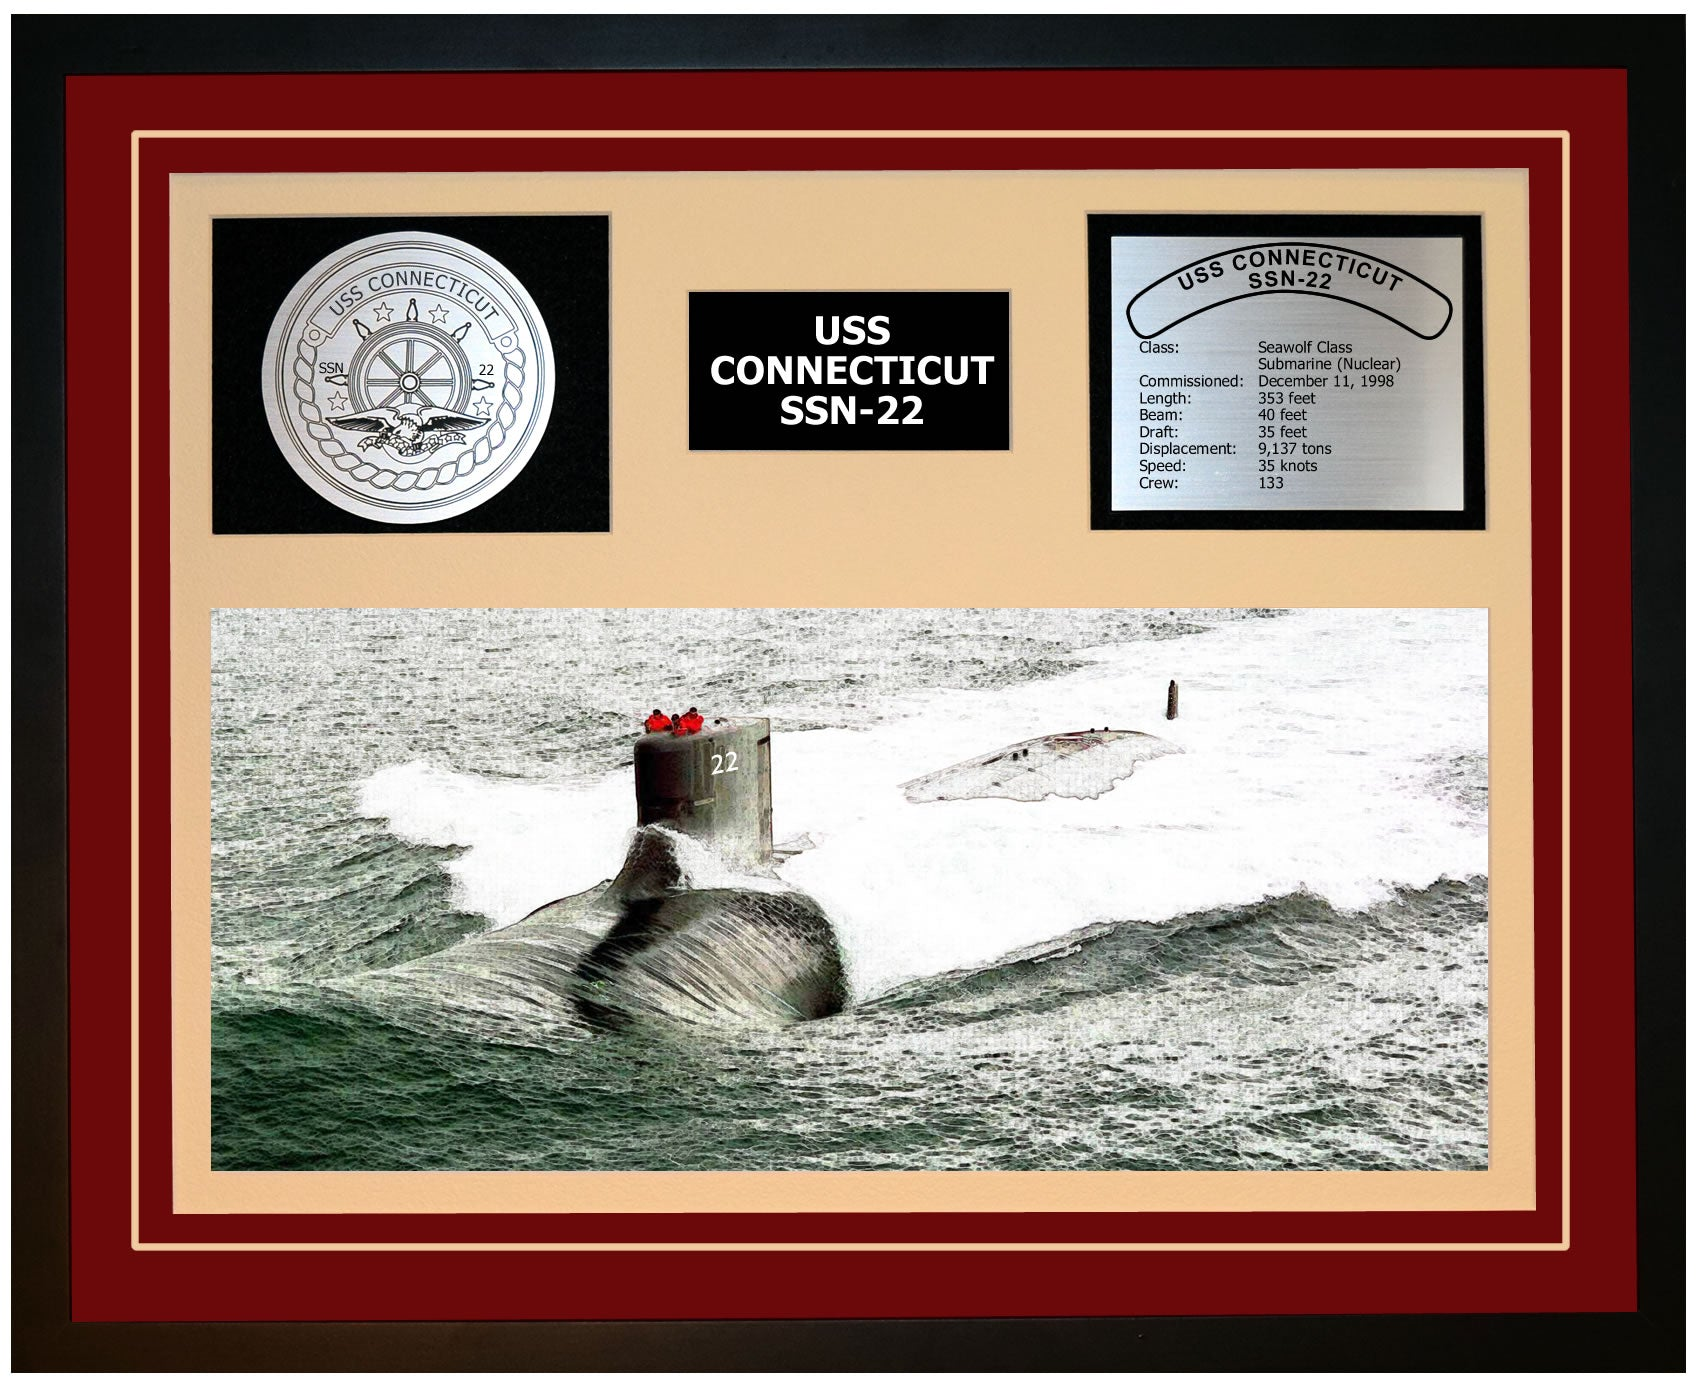 USS CONNECTICUT SSN-22 Framed Navy Ship Display Burgundy